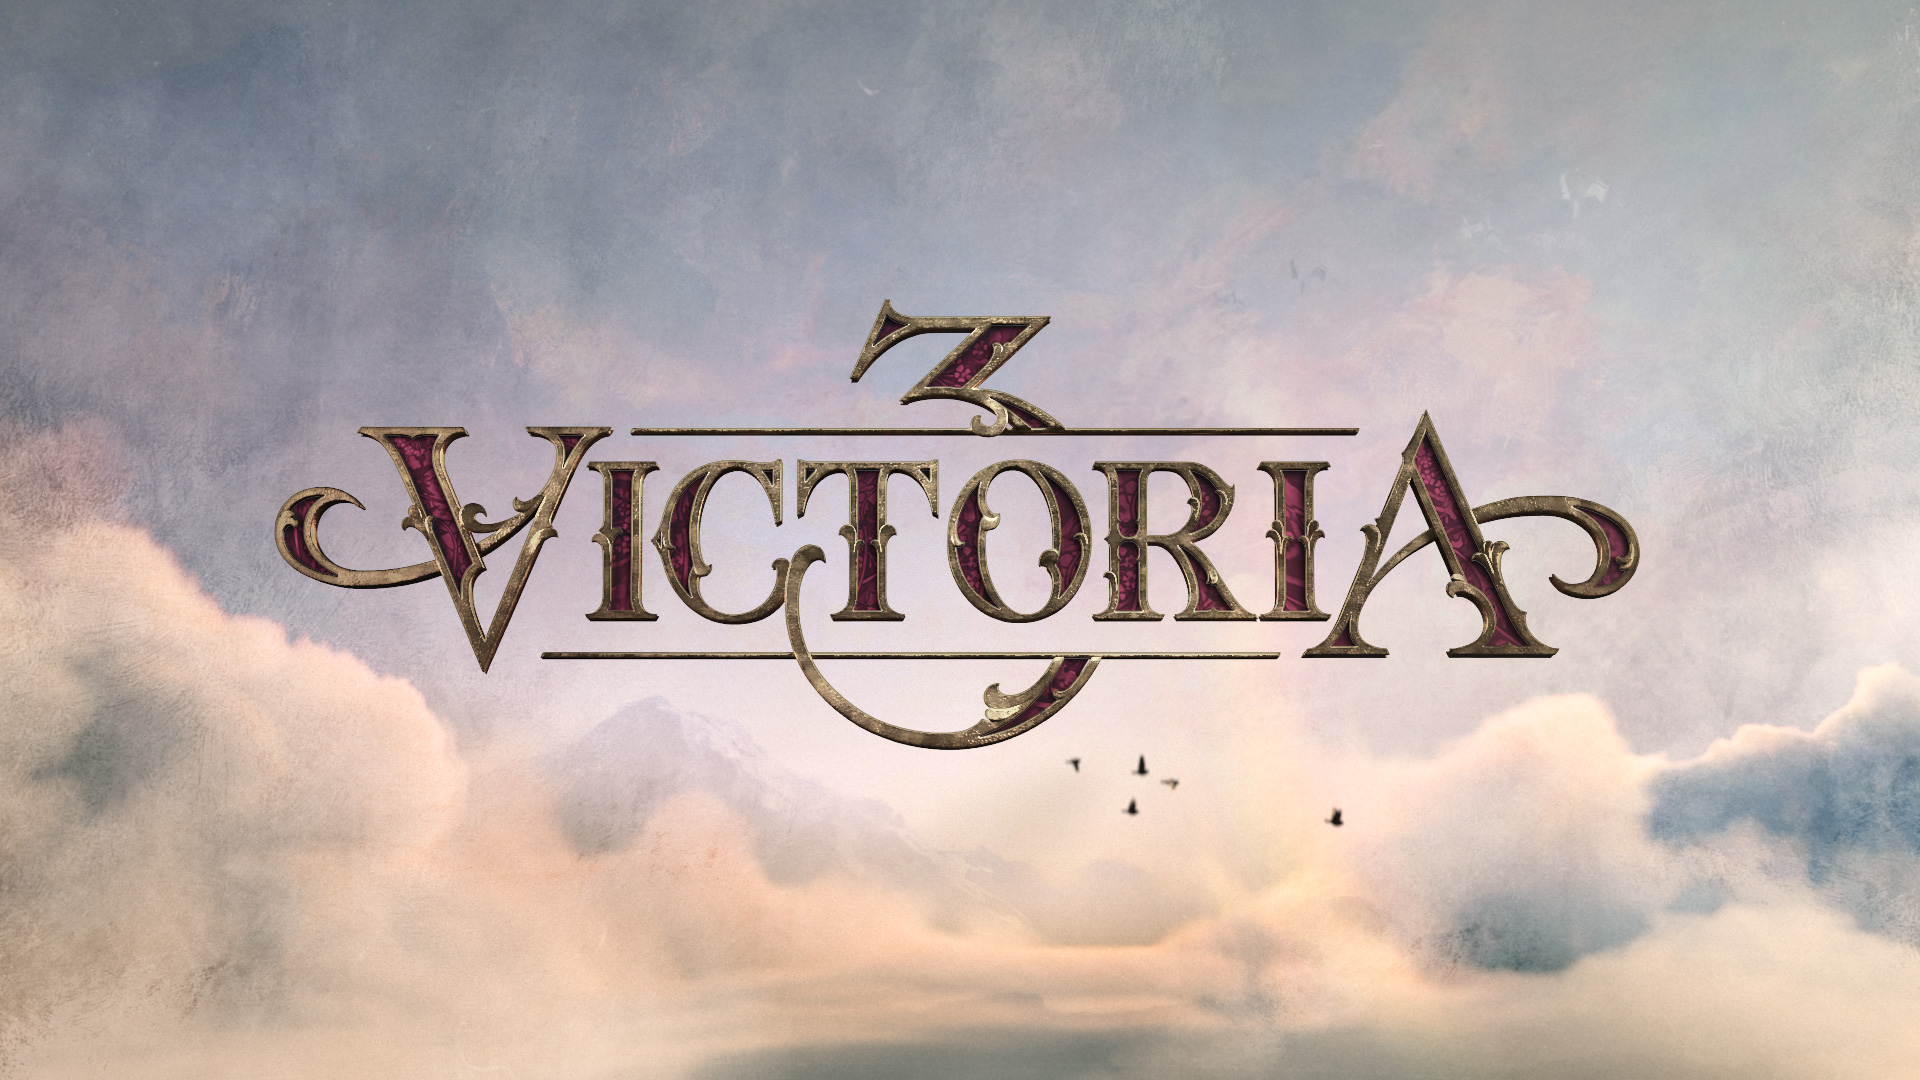 This is not a drill, Victoria 3 is real screenshot